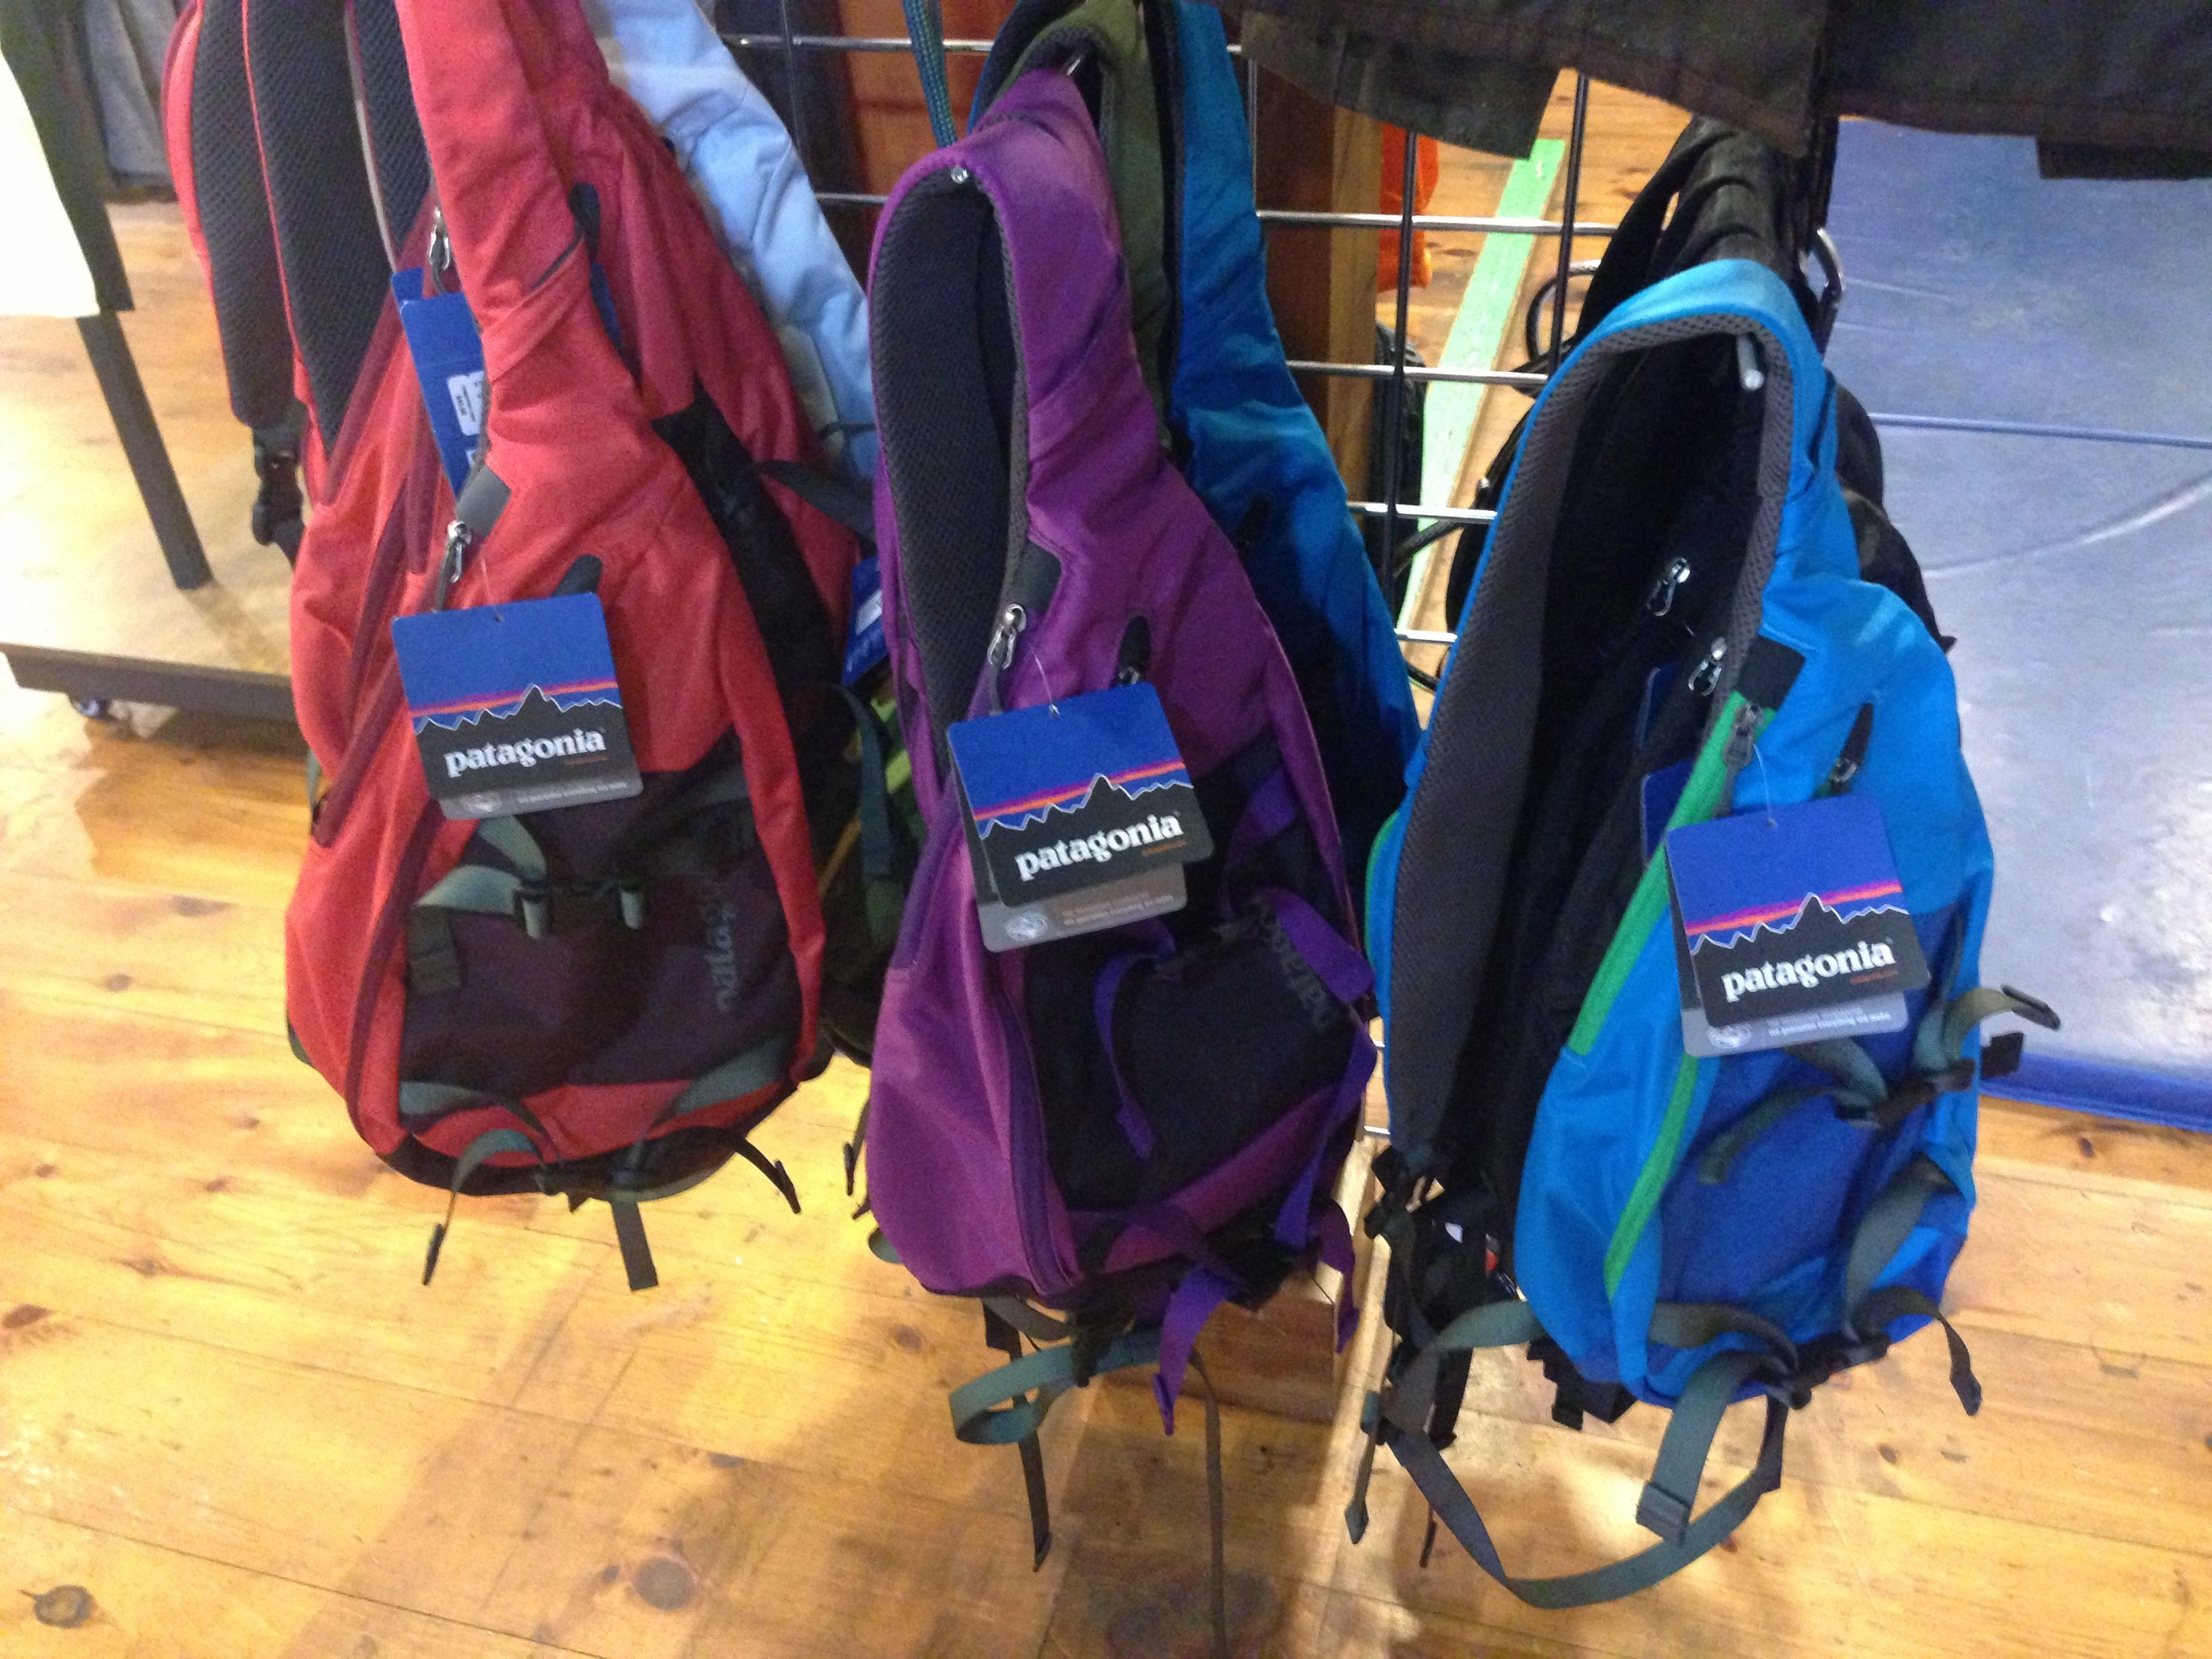 Patagonia Cross Body Bags In All New Colors